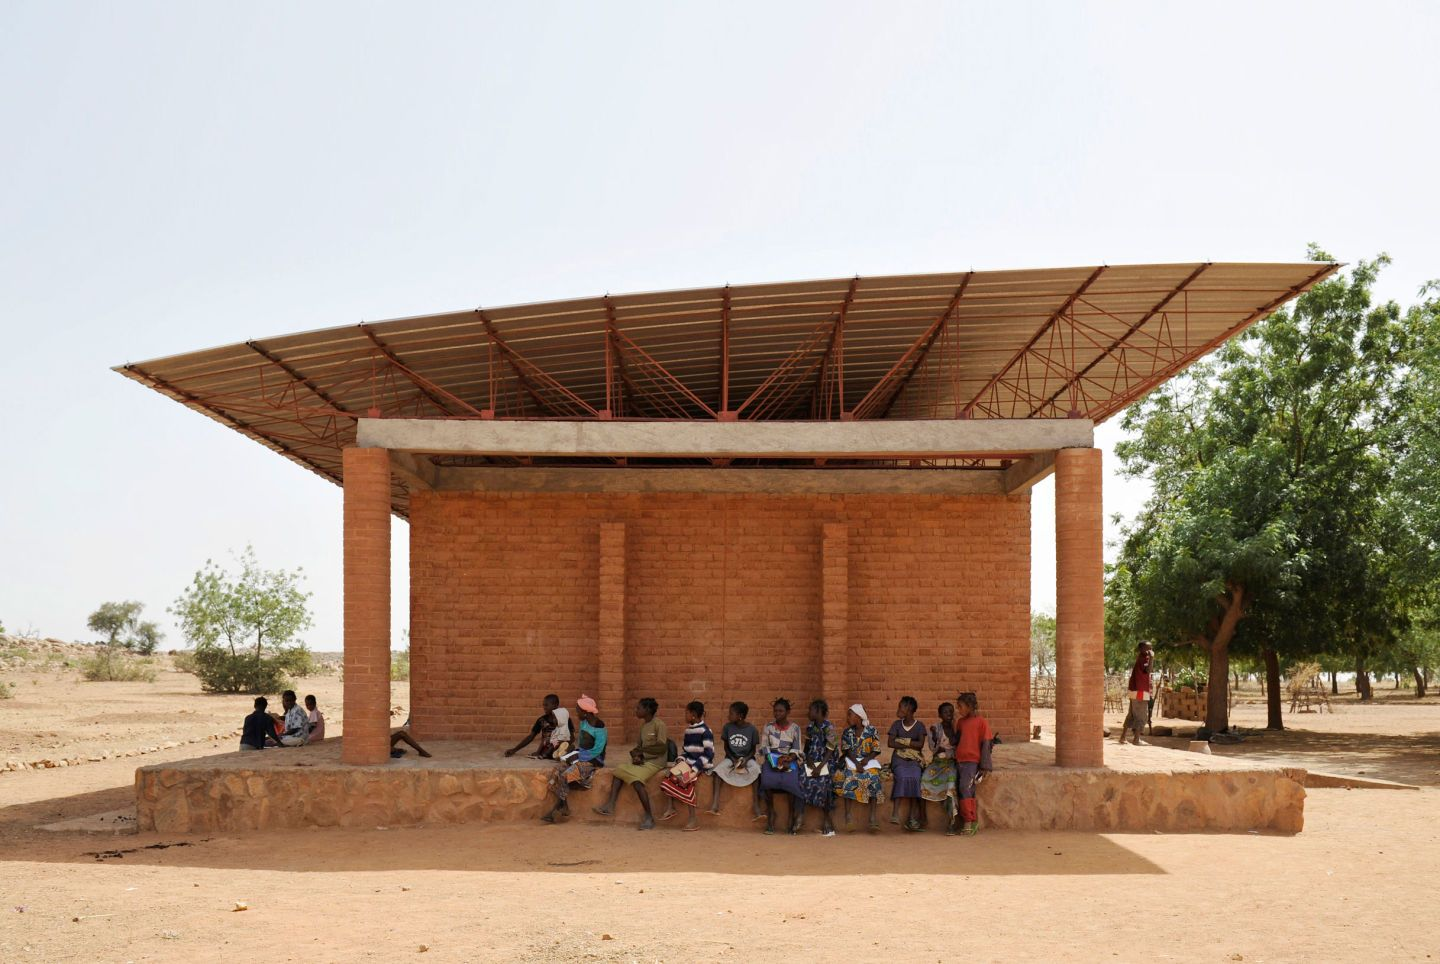 Completed as Francis Kéré's first realized building in 2001, the Gando Primary School marks the beginning of his ambition to shape architecture through a joint community effort.  To ensure a natural and sustainable cooling system in an extremely hot re...